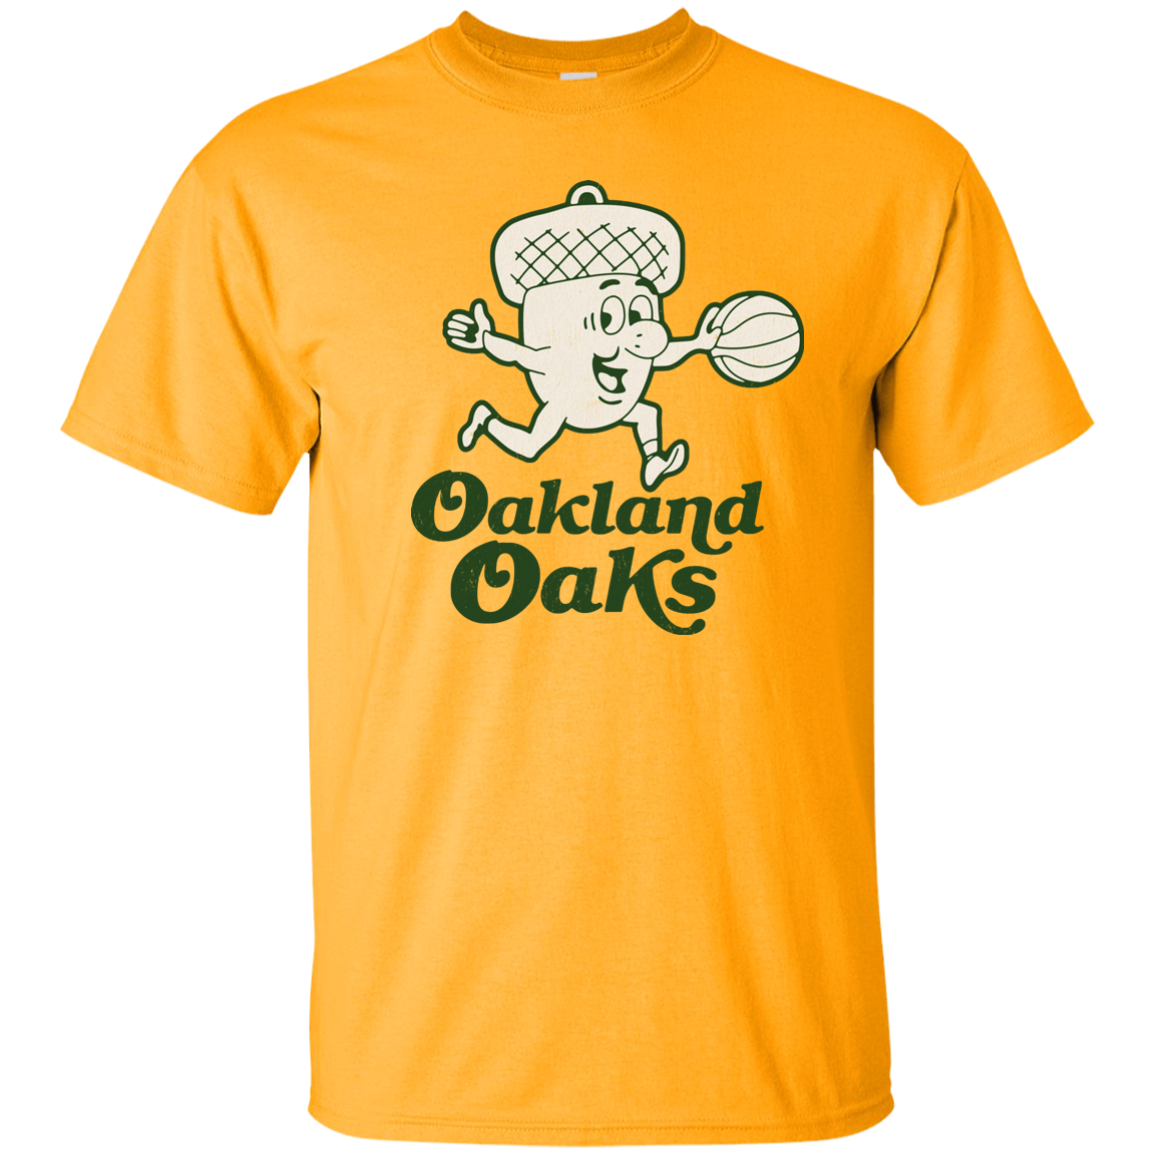 outlet store ca2fb 69a47 Oakland Oaks, ABA, Basketball, Logo, Jersey, Retro, 70's ...